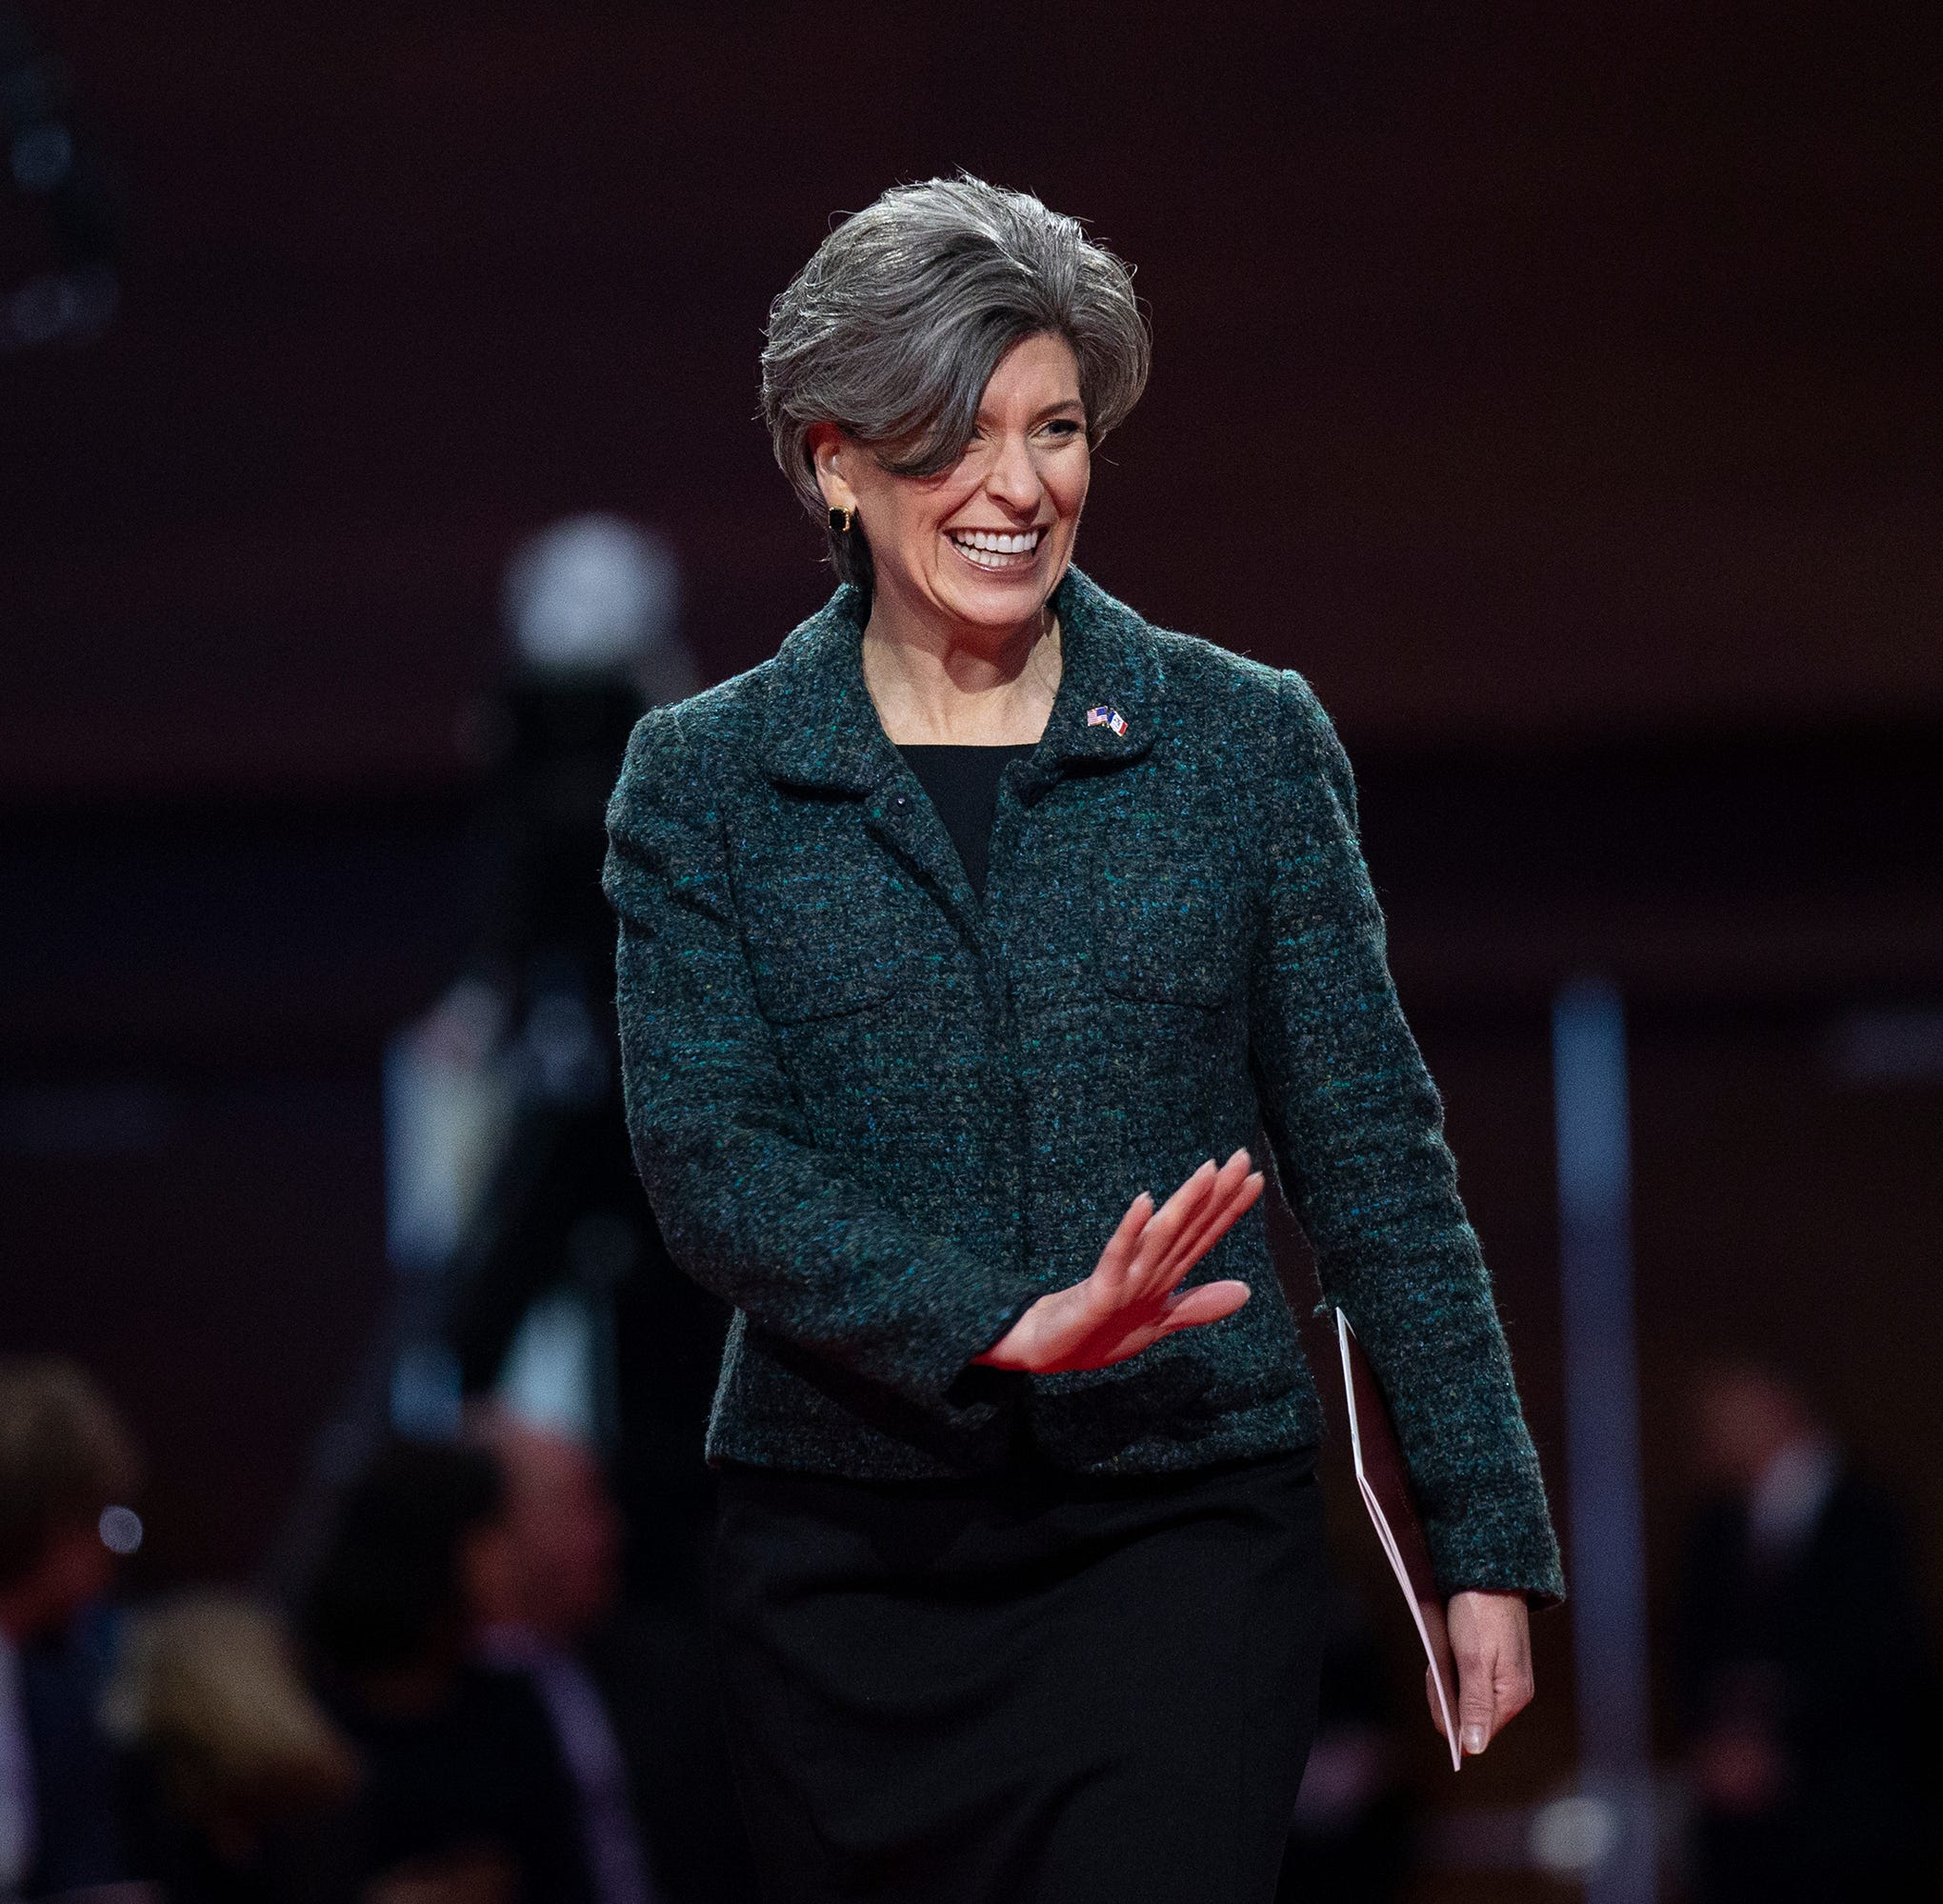 Sen. Joni Ernst introduces plans for paid family leave through retirement deferral